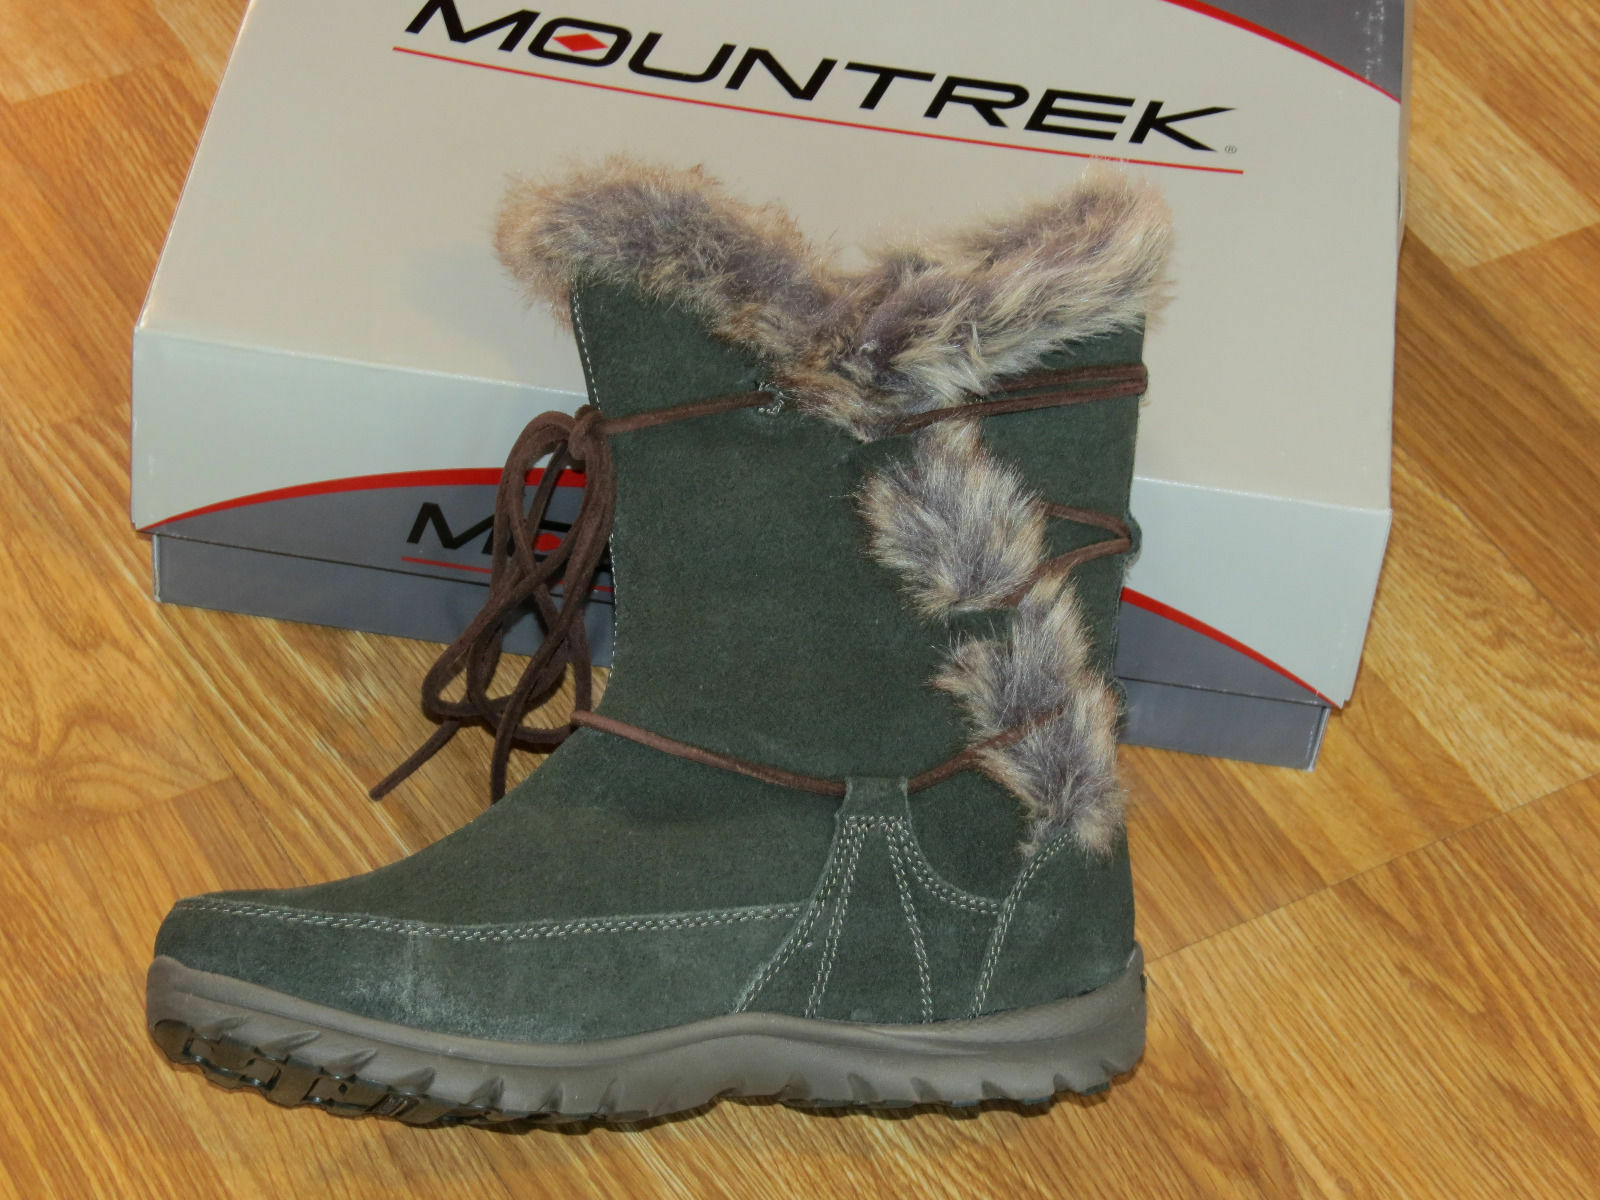 Mountrek Ellie Water Resistant Olive Suede Winter Boots Sz 8.5 (fits like 7.5)